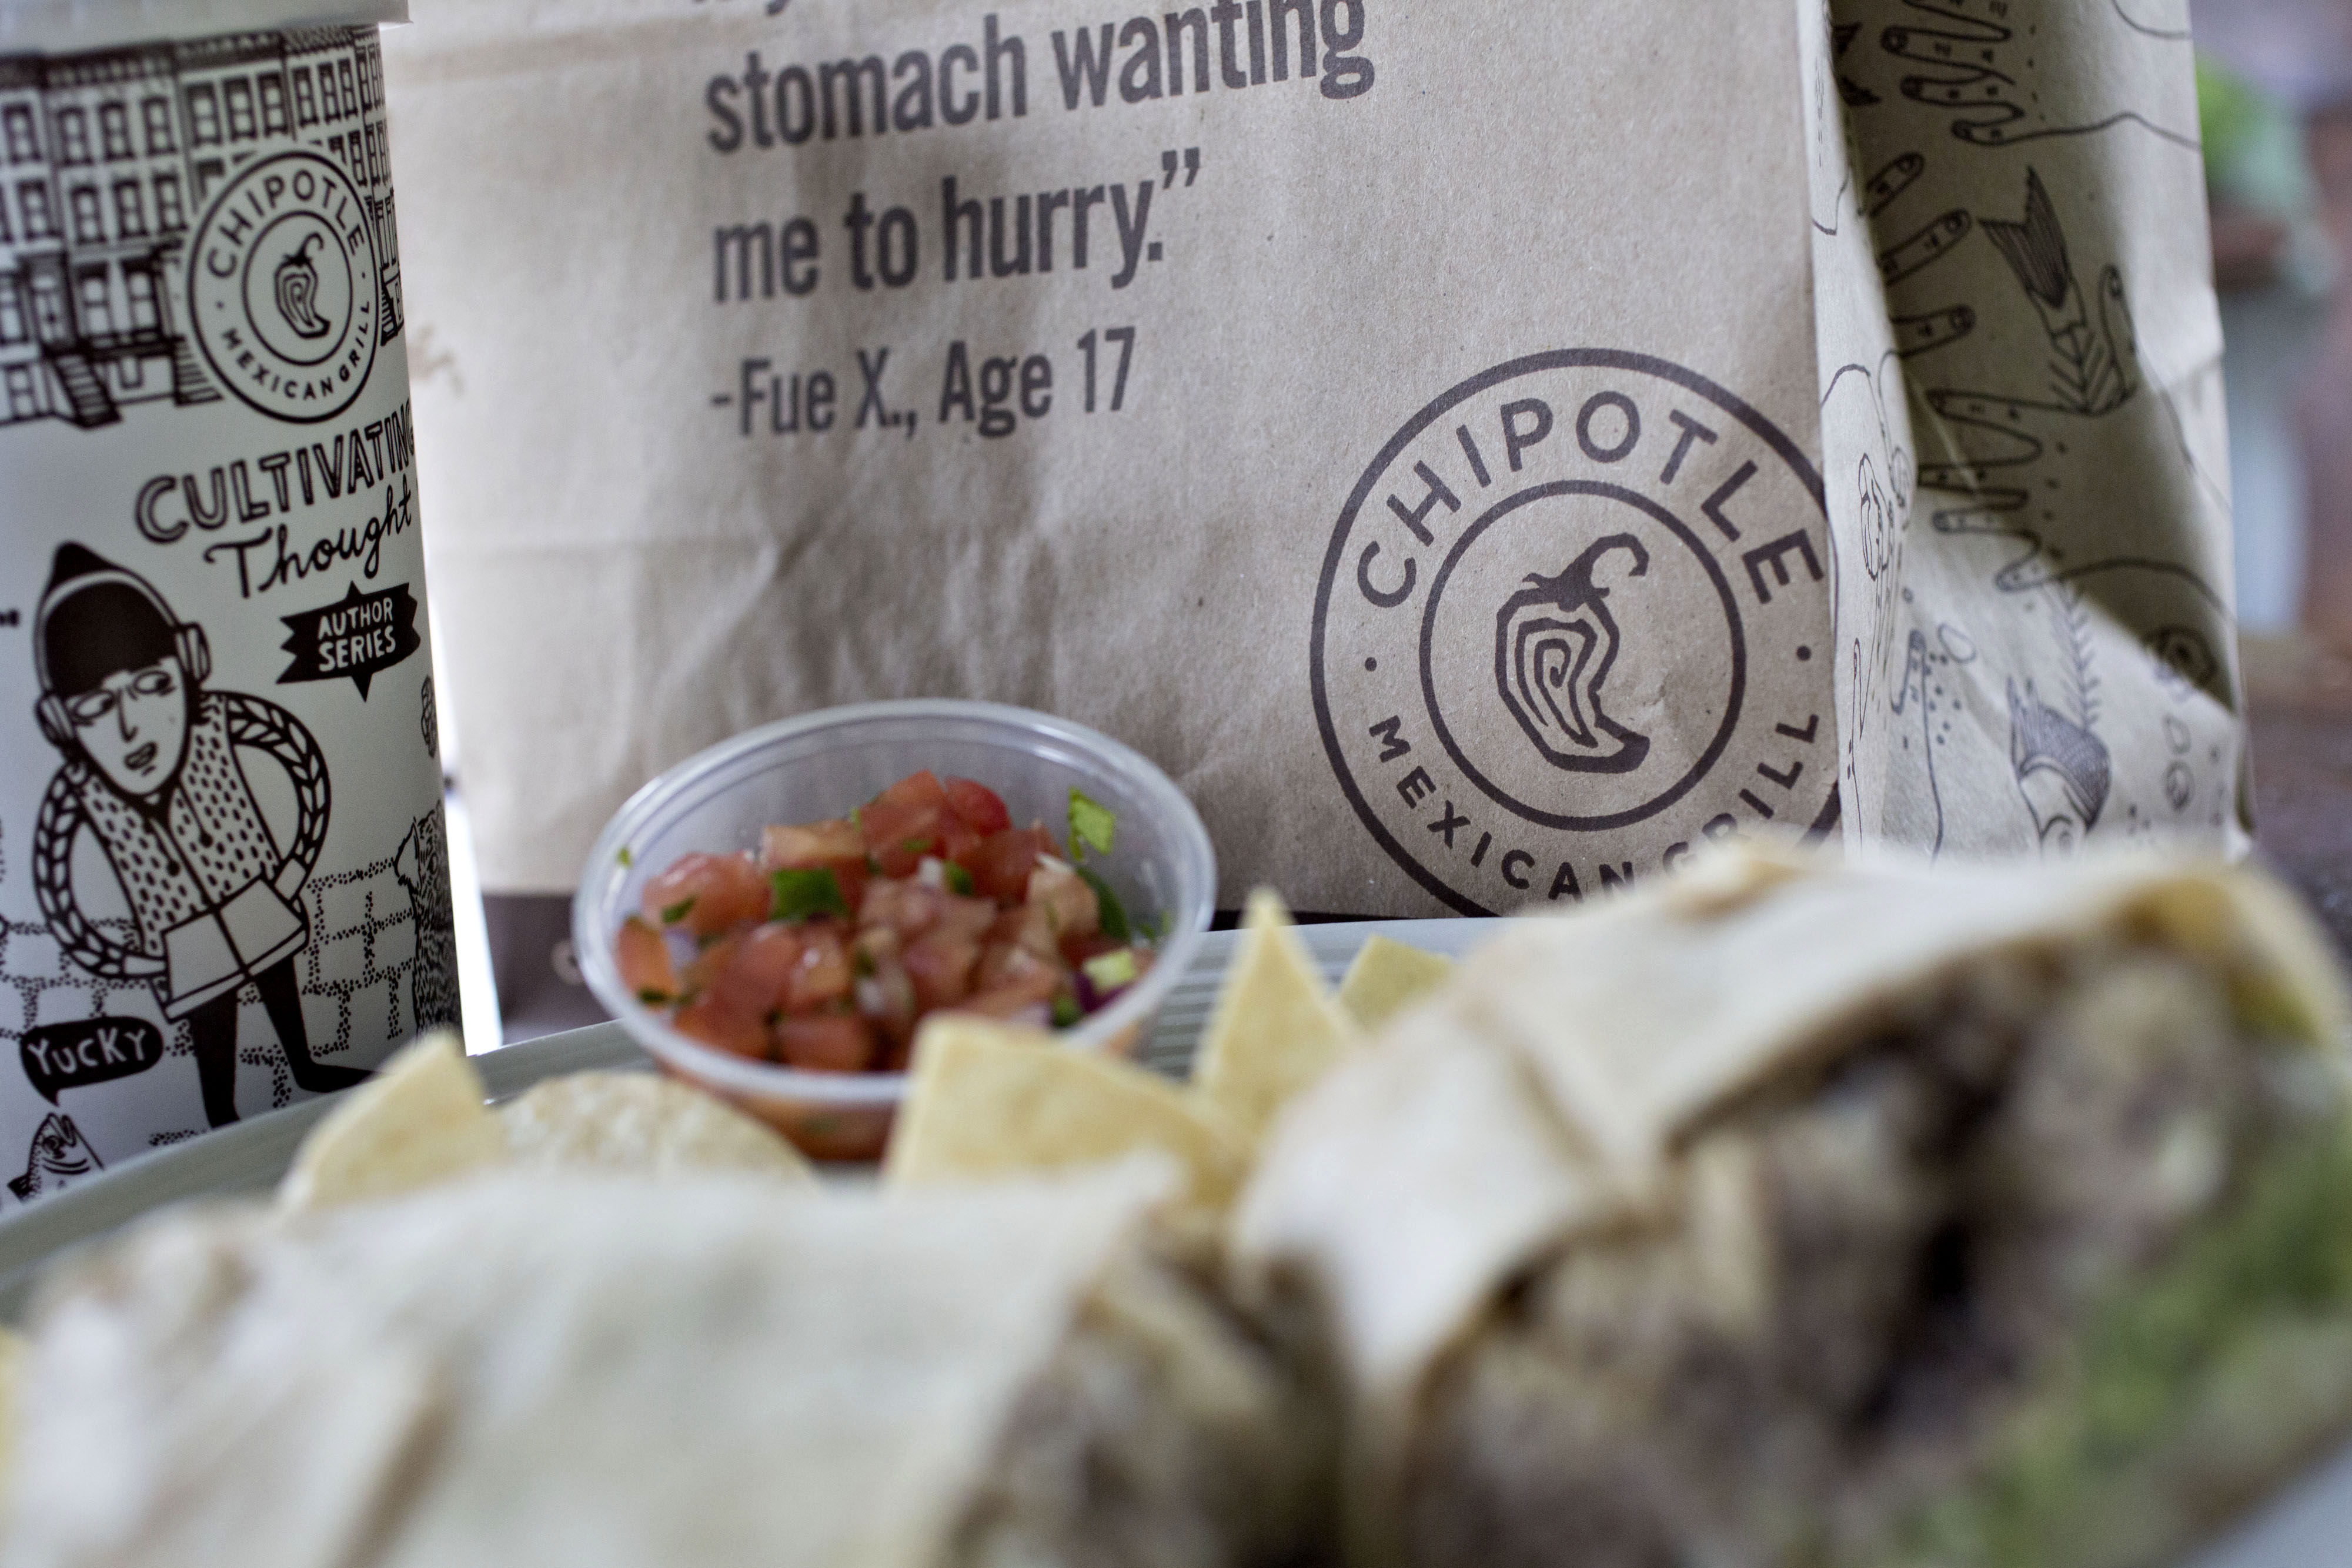 Chipotle Mexican Grill Inc. take-out food is arranged for a photograph in Tiskilwa, Illinois, U.S., on Friday, April 22, 2016. Chipotle Mexican Grill Inc. is expected to release earnings figures on April 26. Bloomberg—Bloomberg via Getty Images